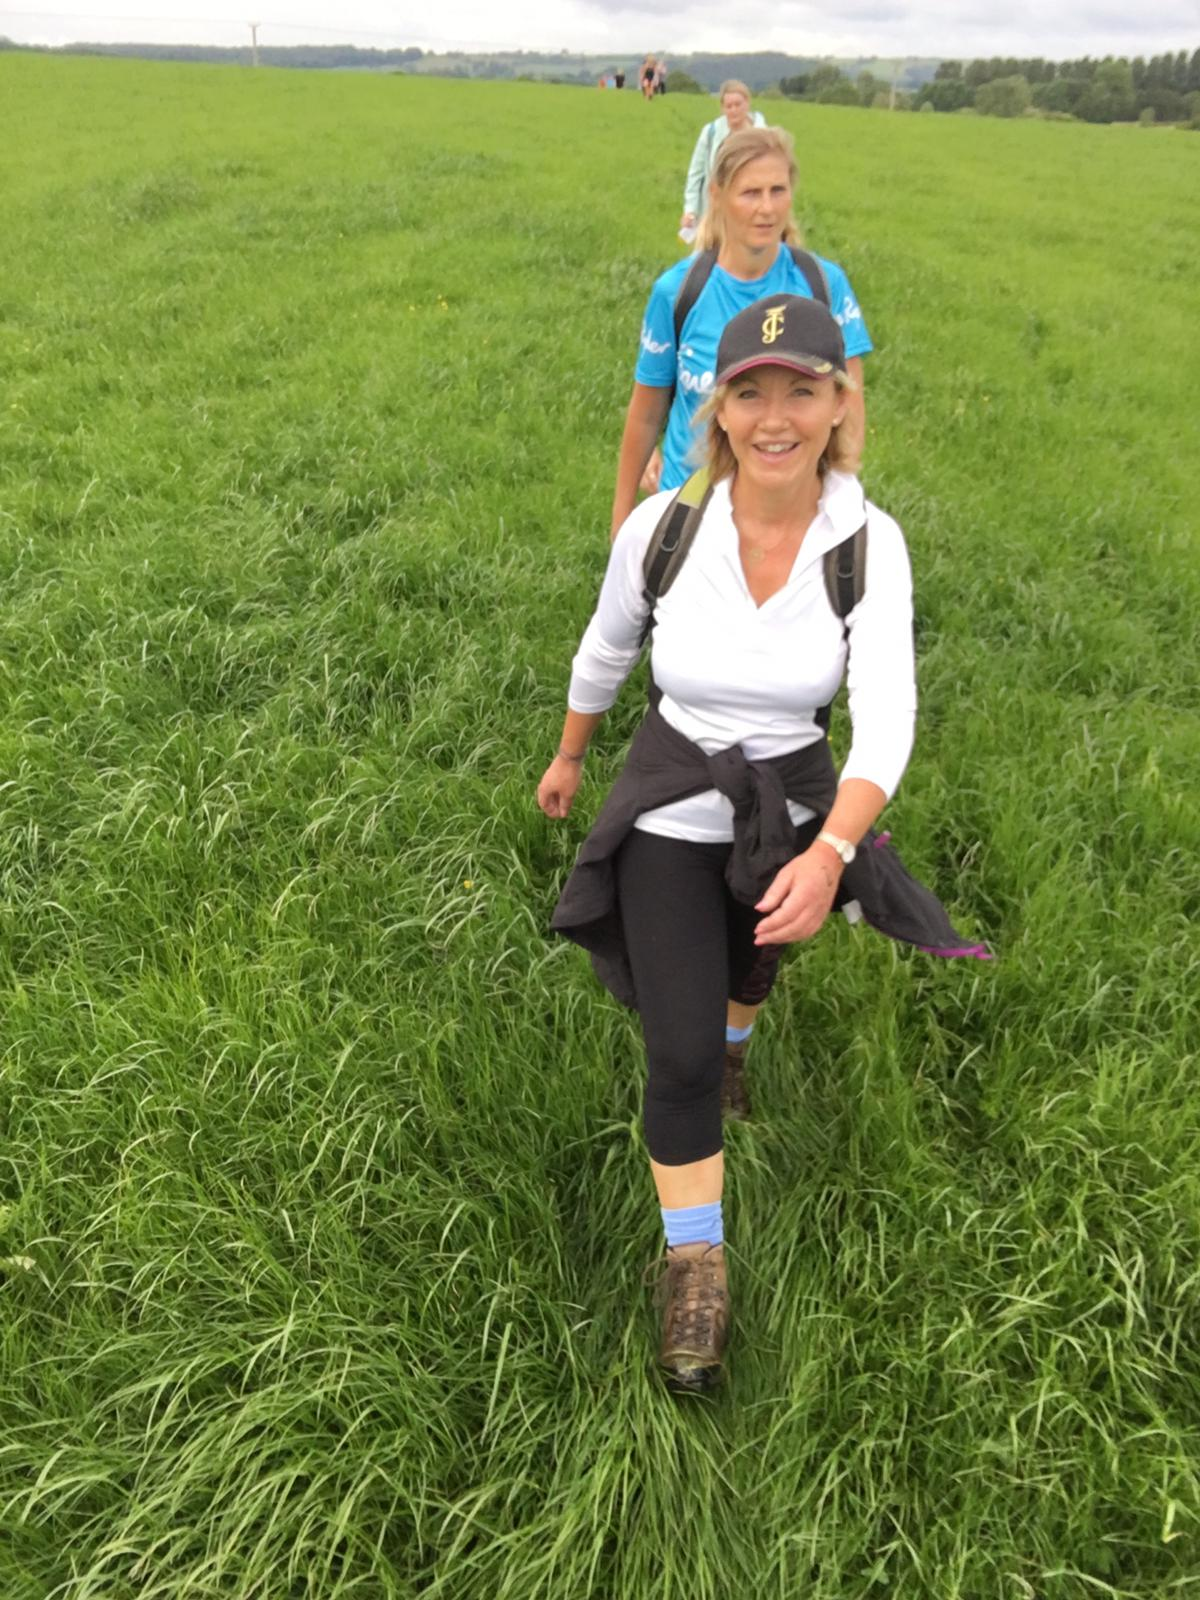 Above: Cherry Orchard's md Jackie Collins with a smile on her face many miles into the walk.